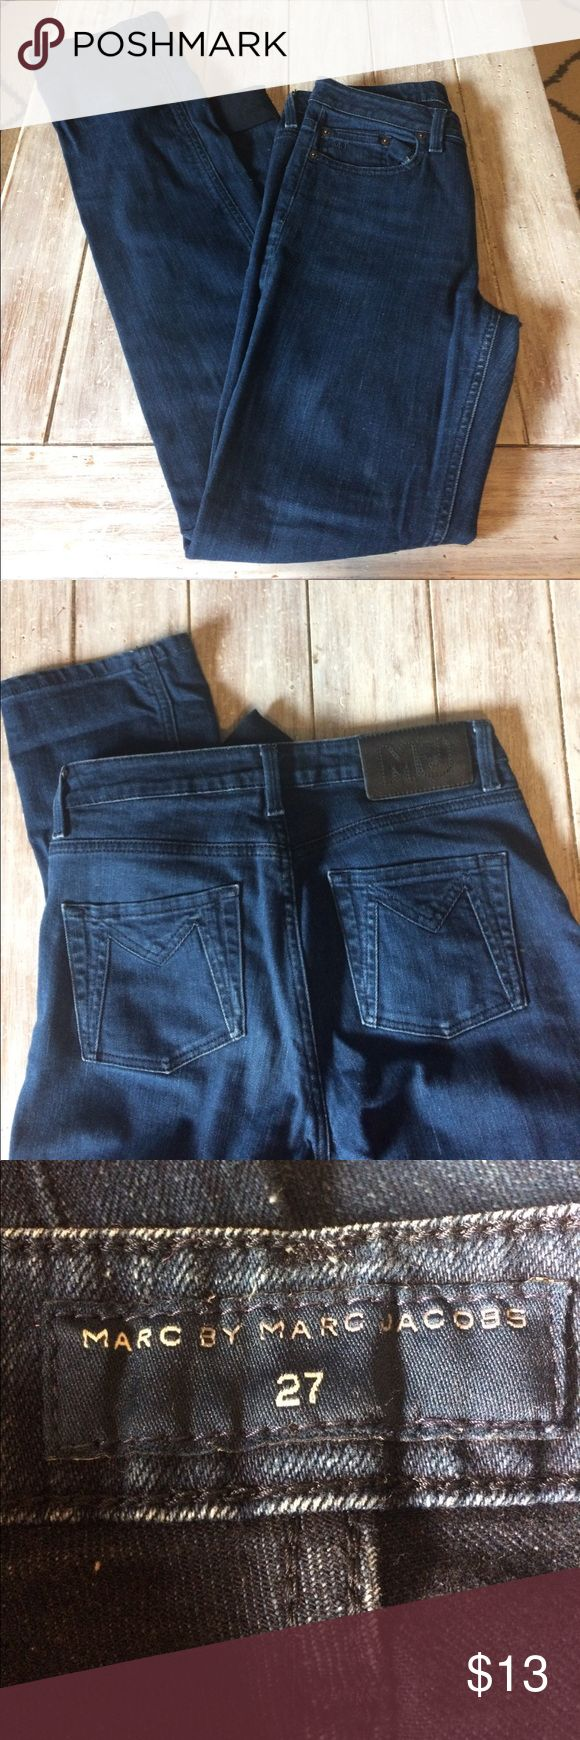 Marc by Marc Jacobs jeans Marc Jacobs straight cut jeans Marc By Marc Jacobs Jeans Straight Leg